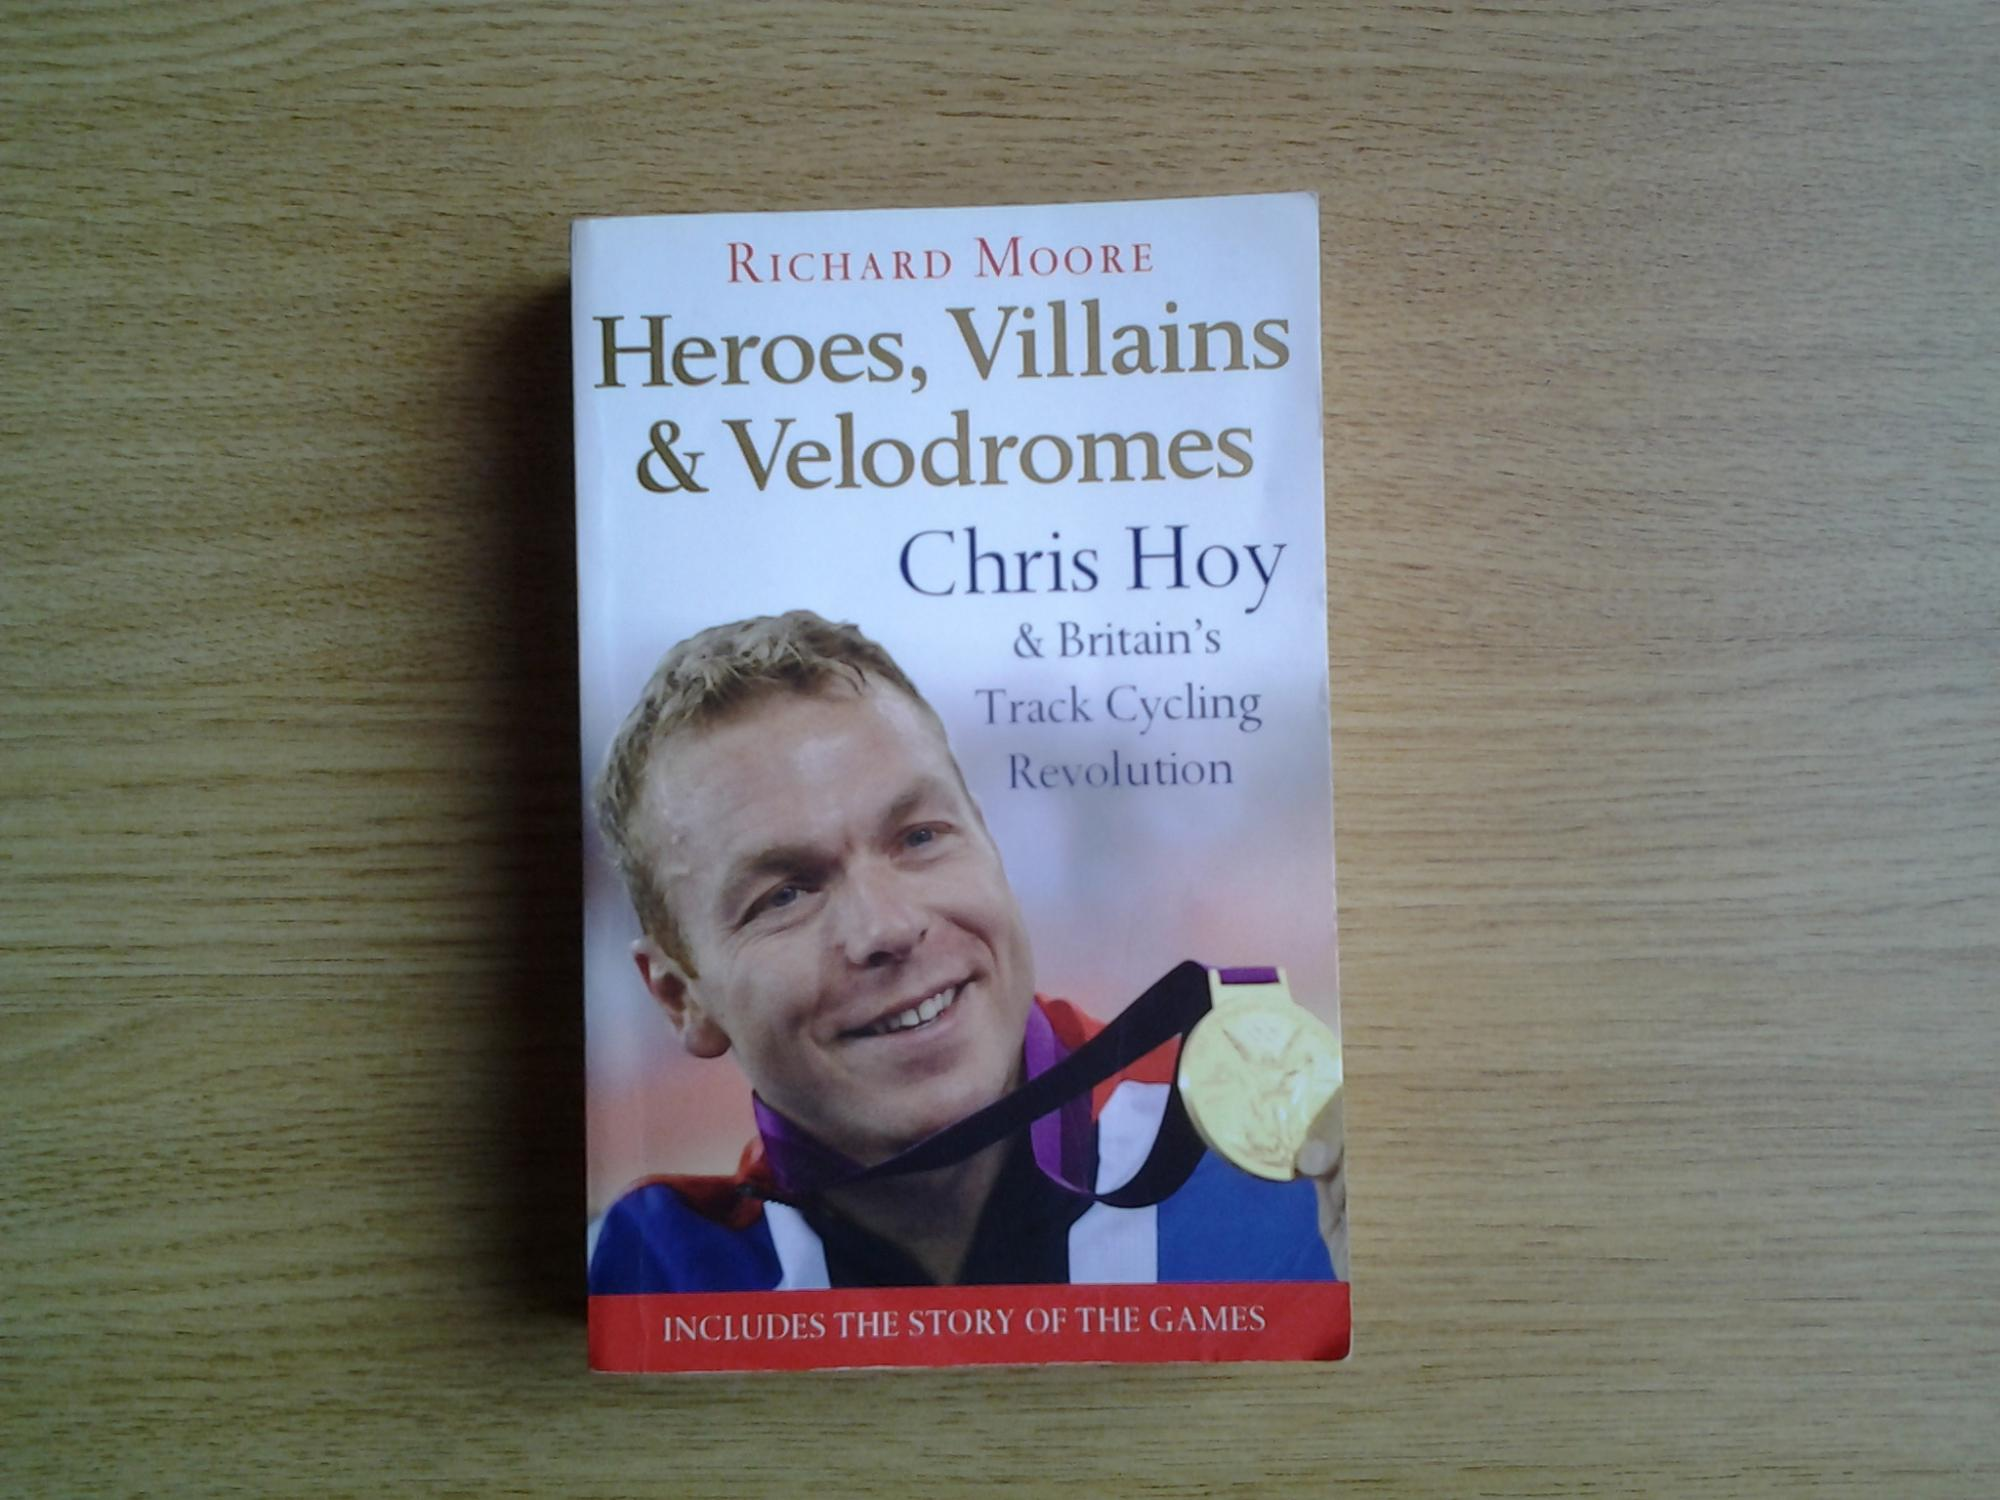 Chris Hoy and Britain's Track Cycling Revolution